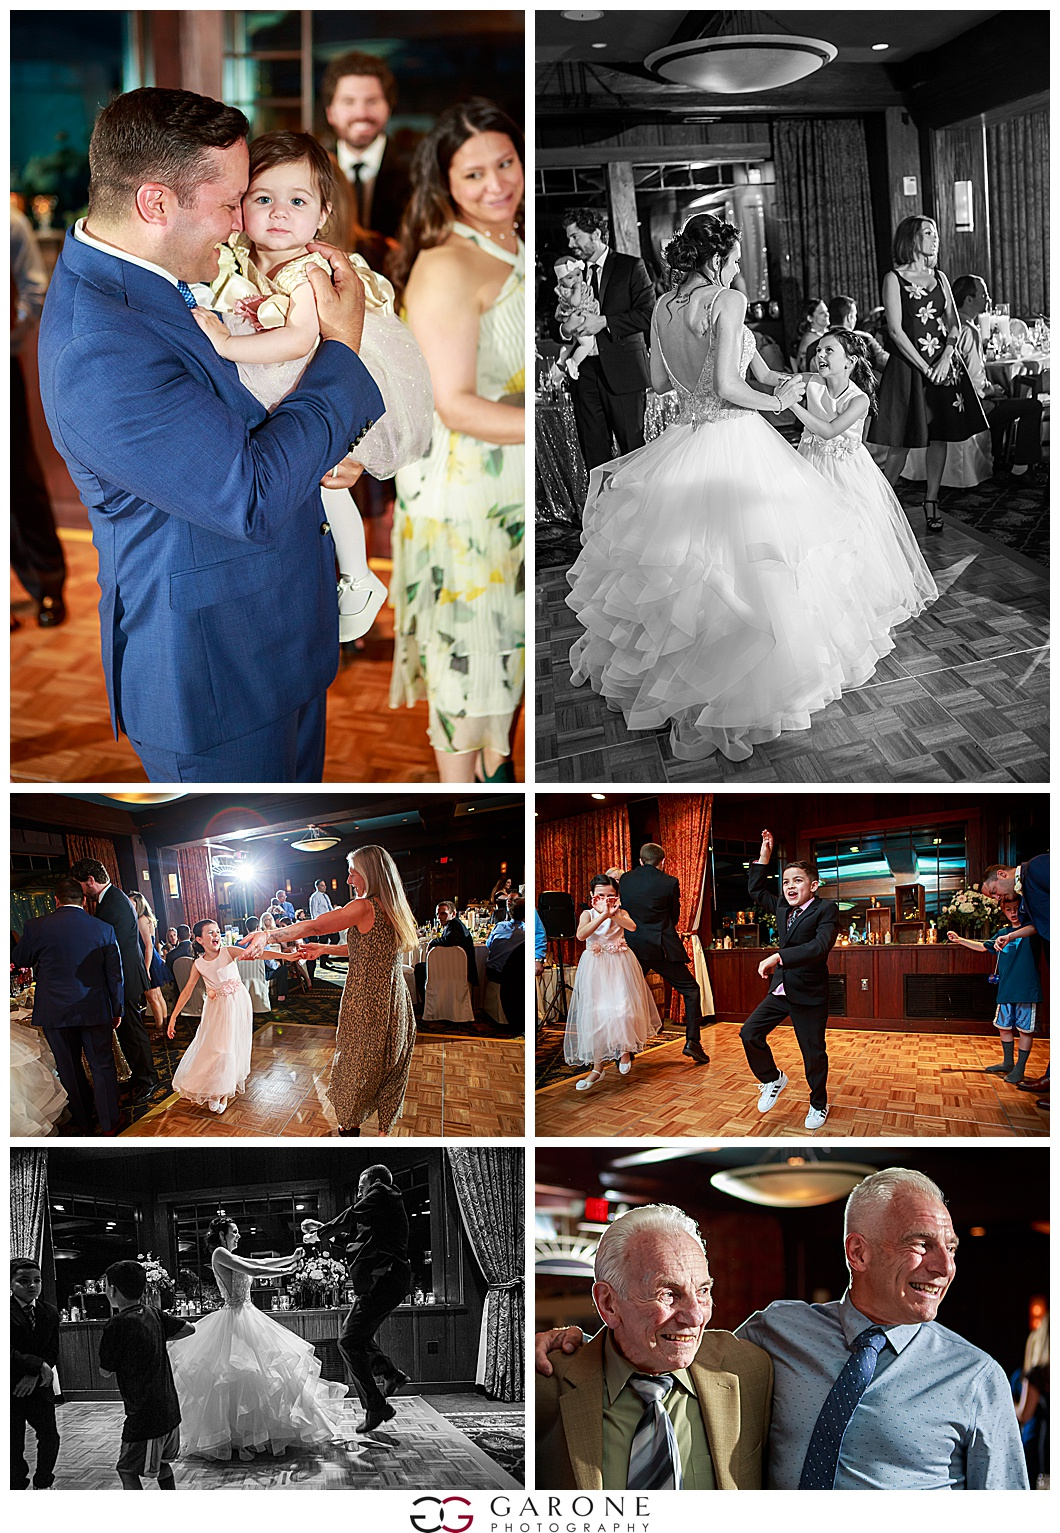 Shauna_Nathan_Carriage_House_Chuch_Landing_Lake_Winnapausakee_Wedding_0035.jpg